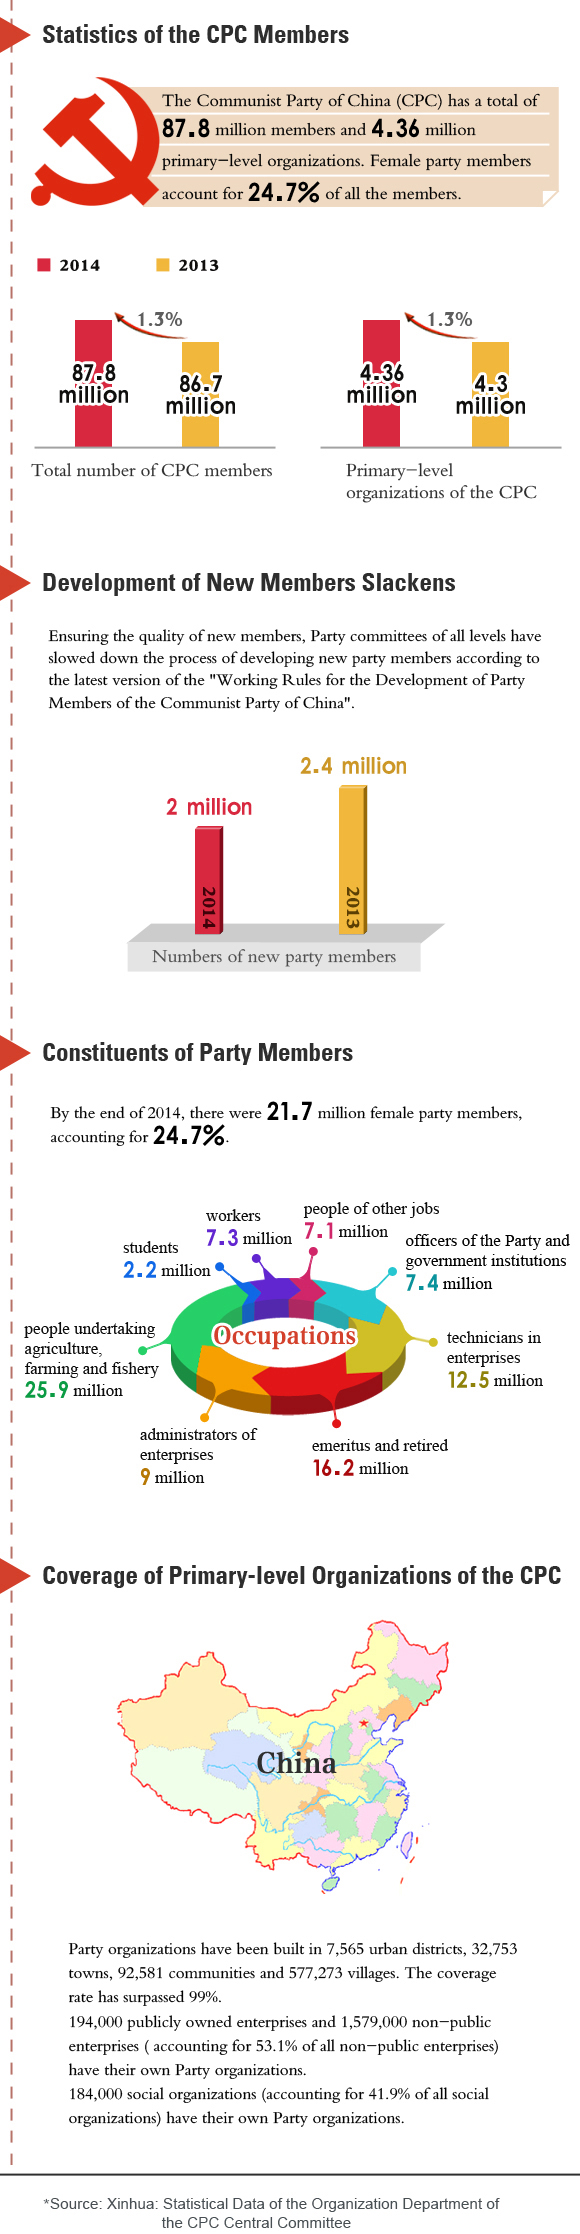 Percentage of Female Party Members Reaches 24.7%